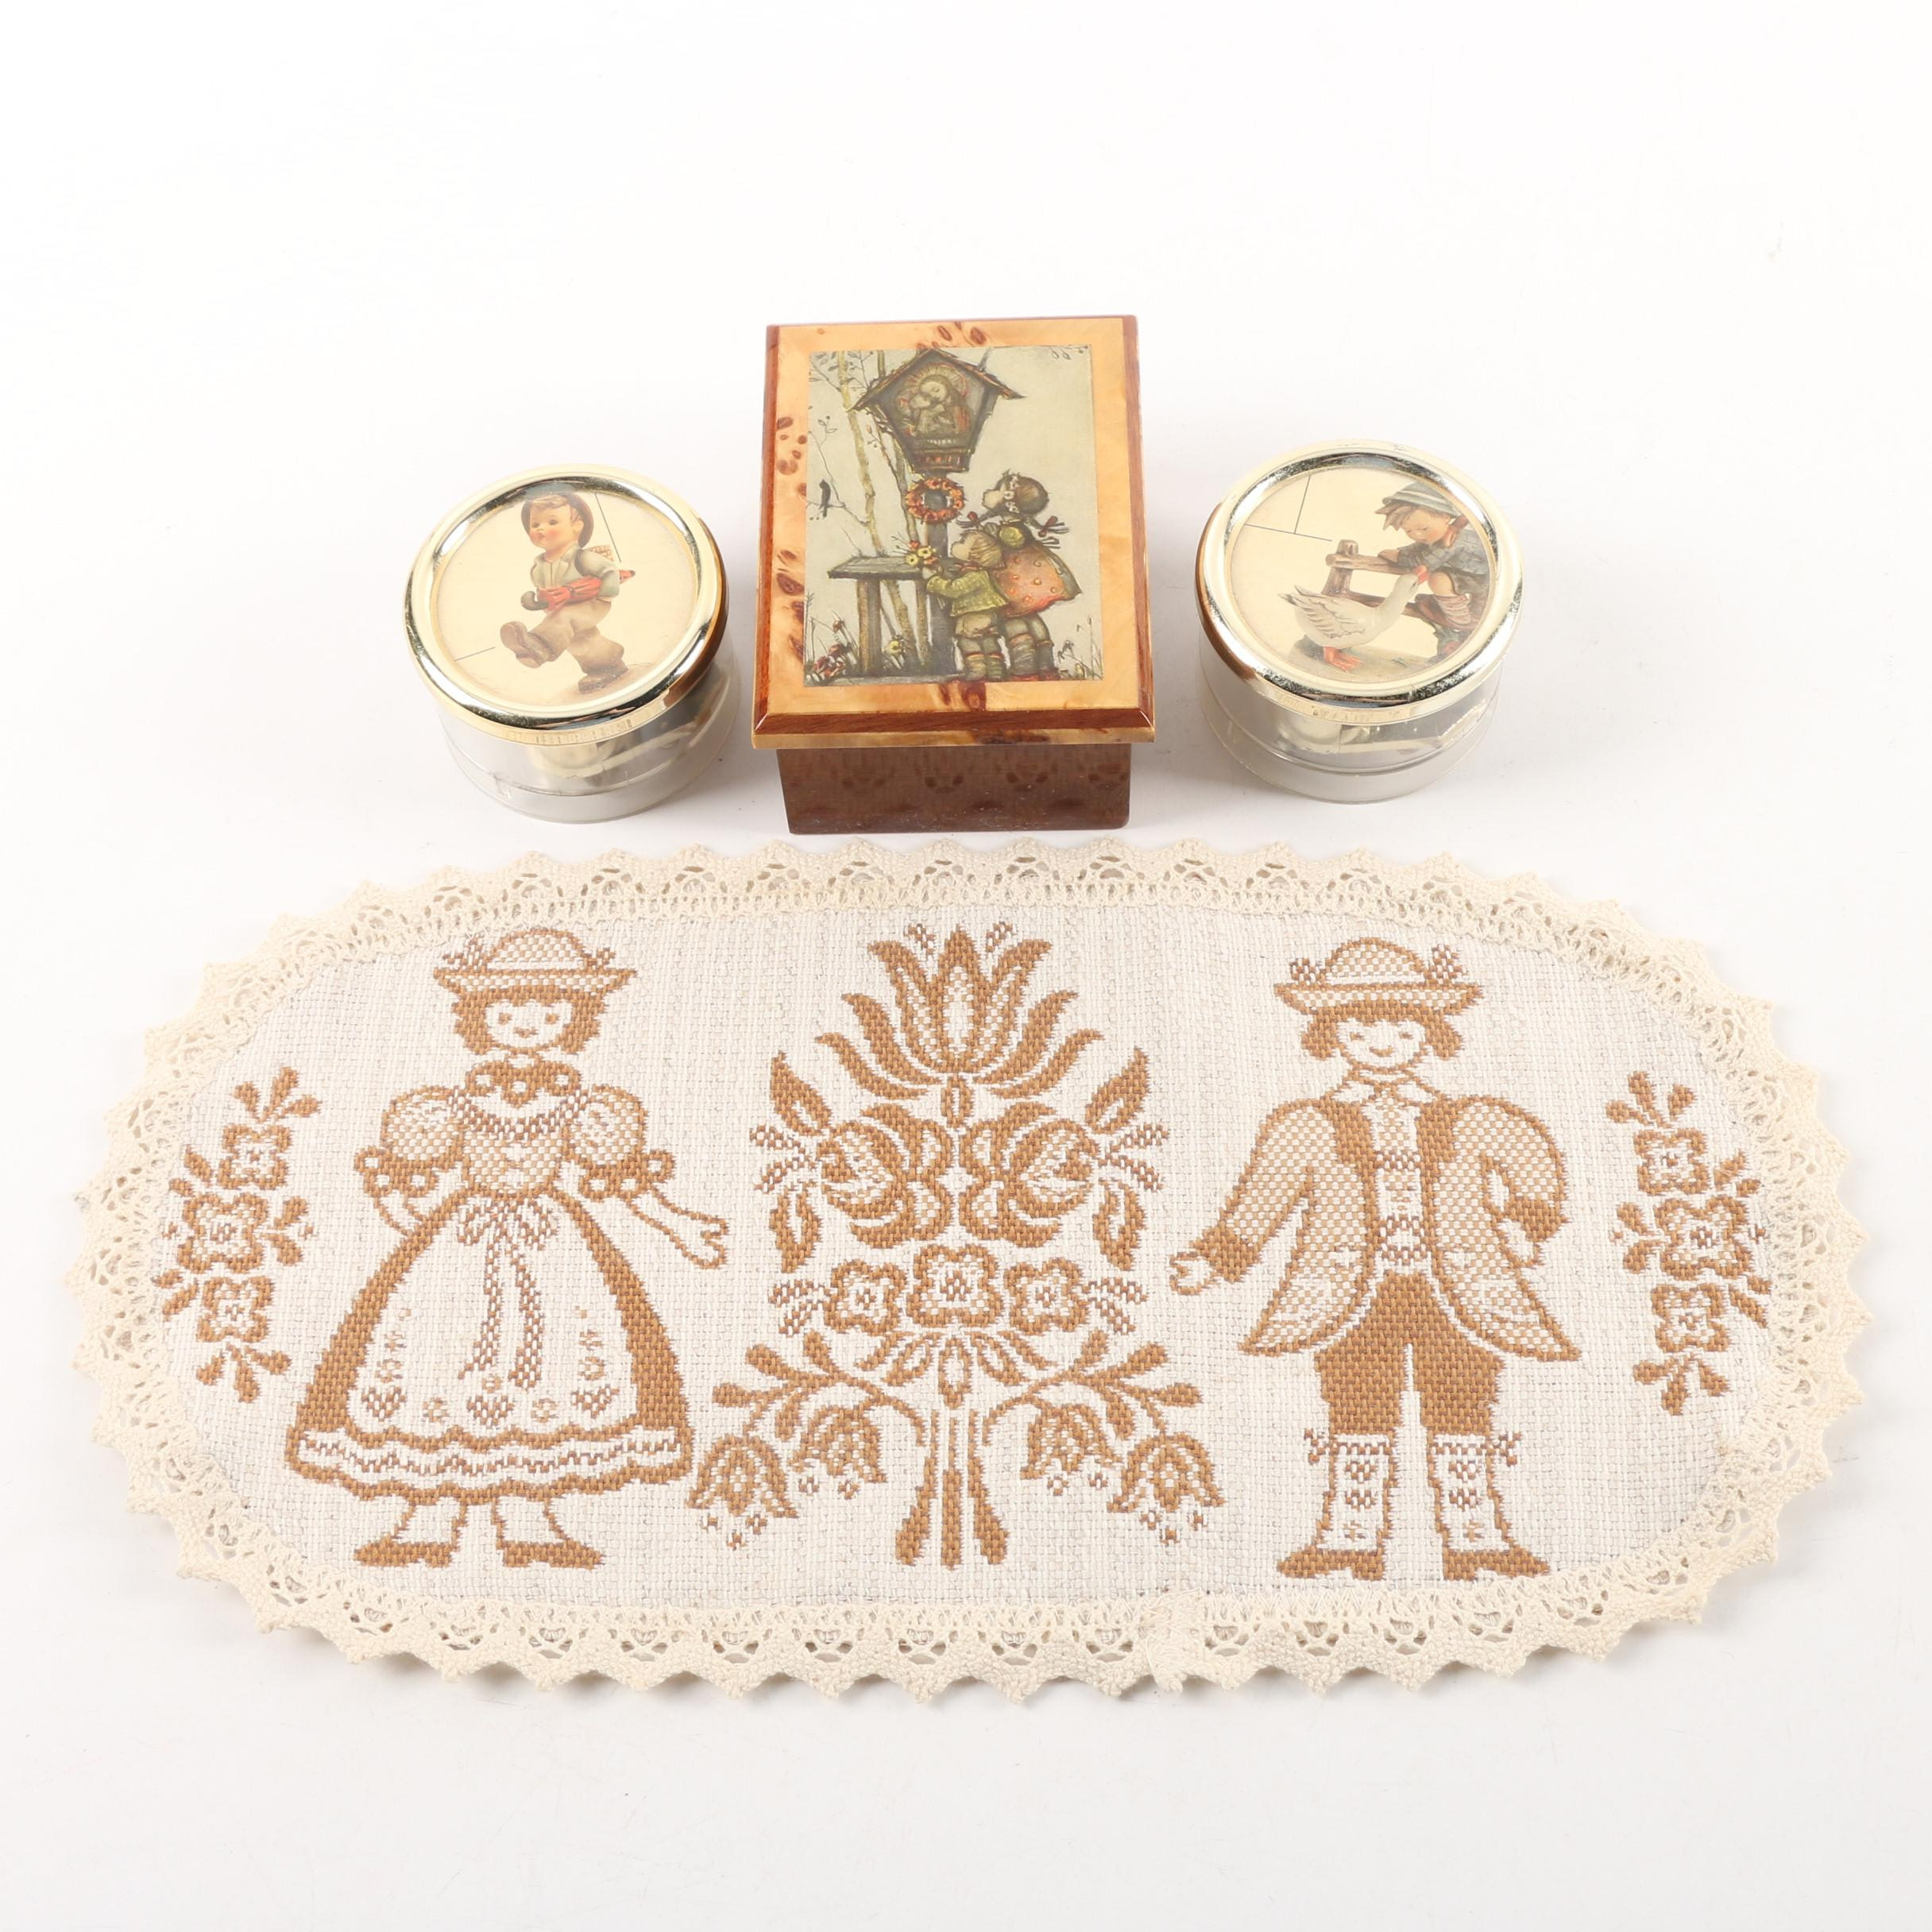 Decorative Wooden Trinket Box, Two Plastic Music Boxes, and Doily